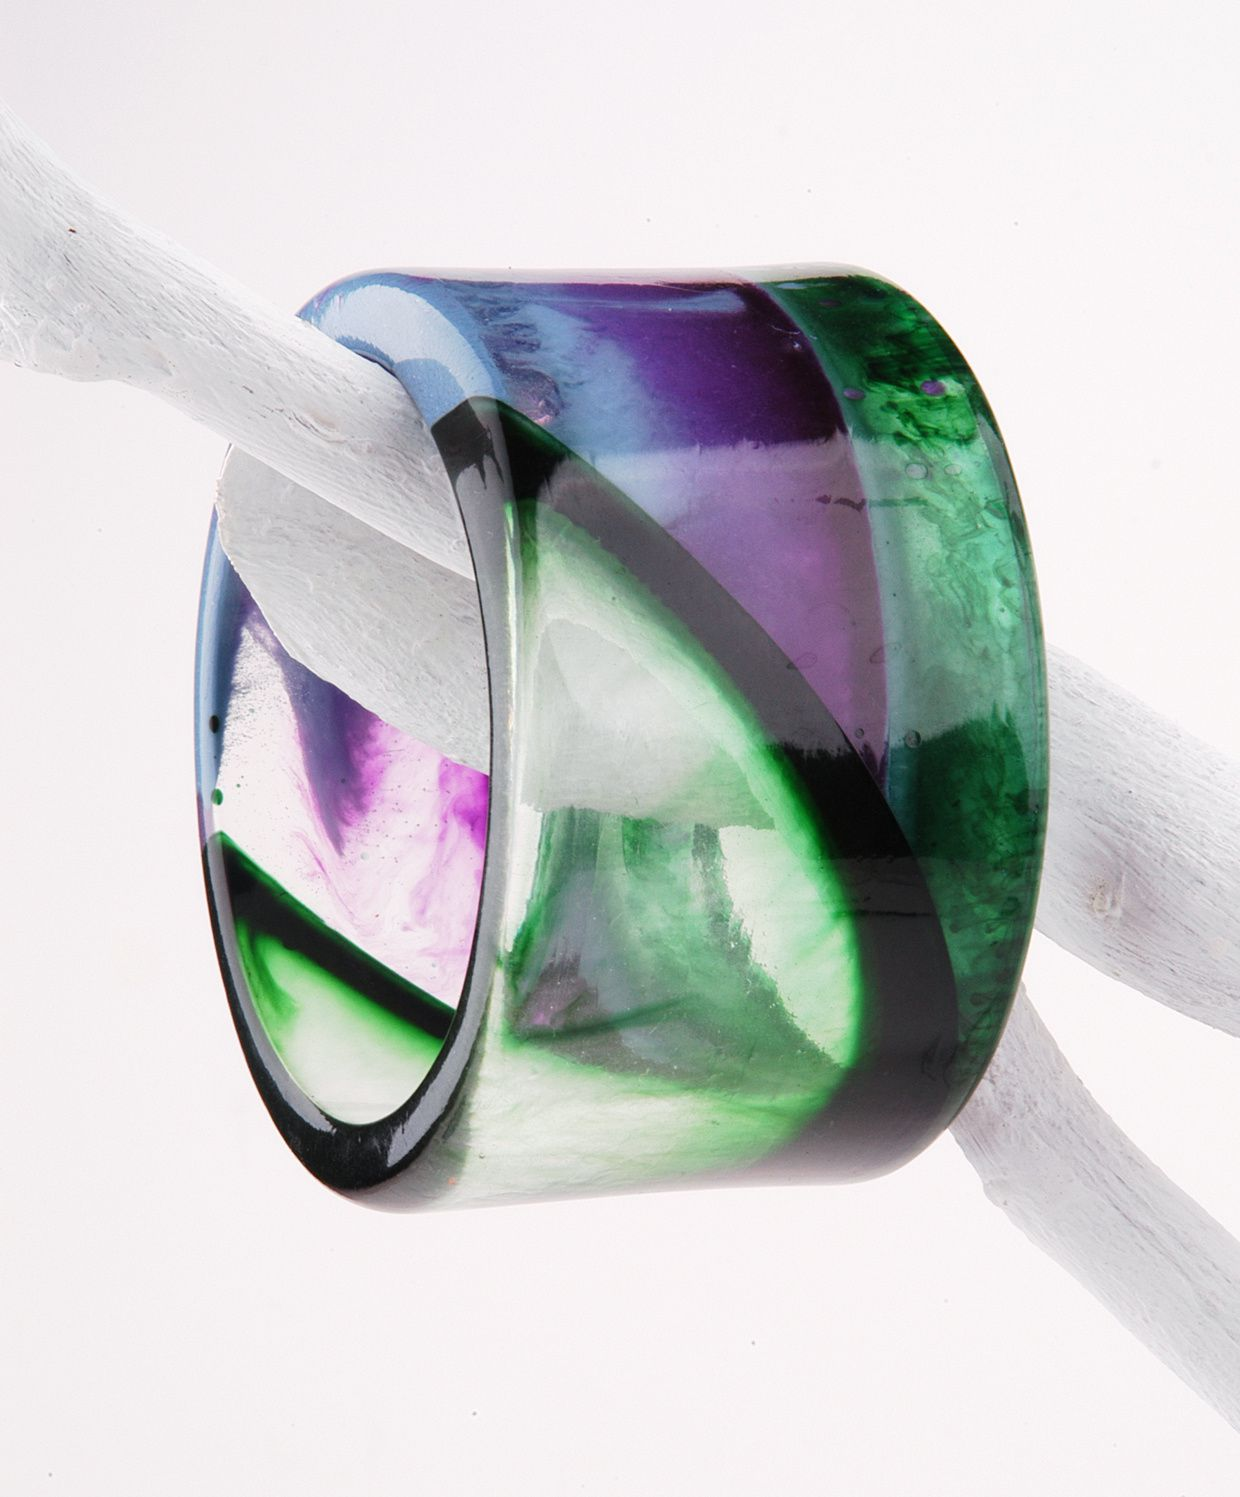 Transparent and opaque parts alternate in the first version of hand made resin bangle